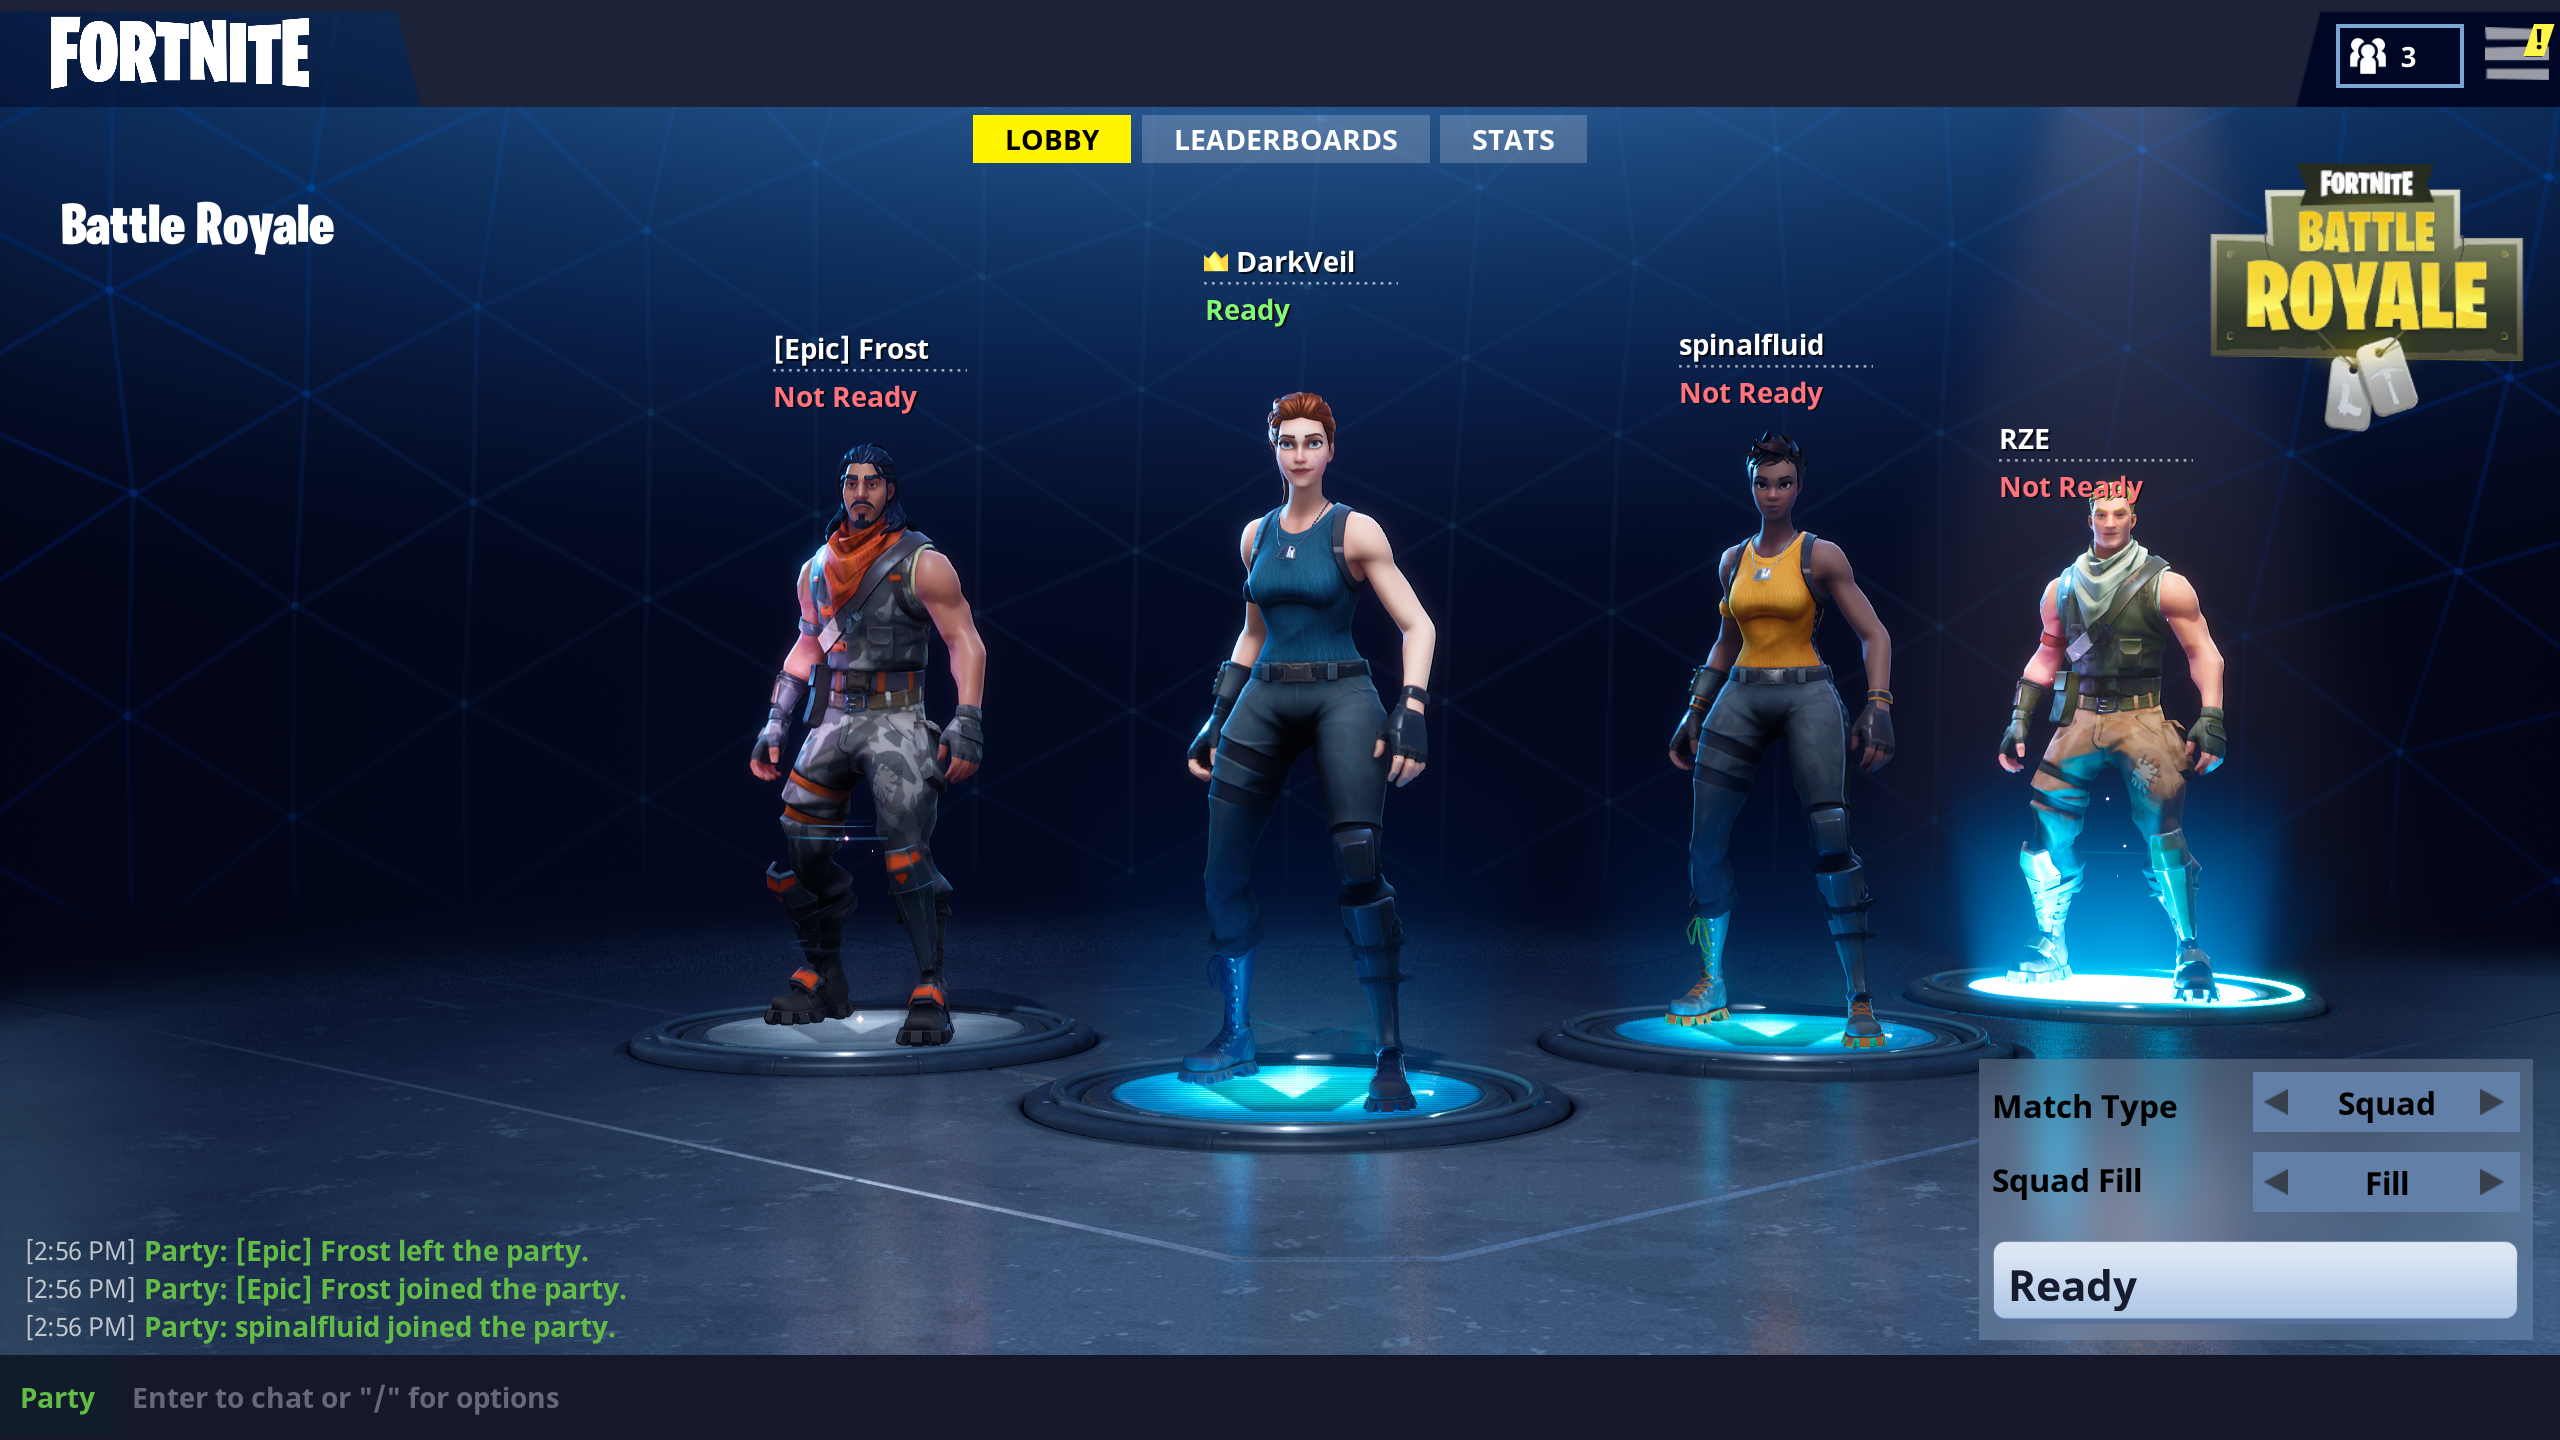 Epic is suing 2 Fortnite cheaters